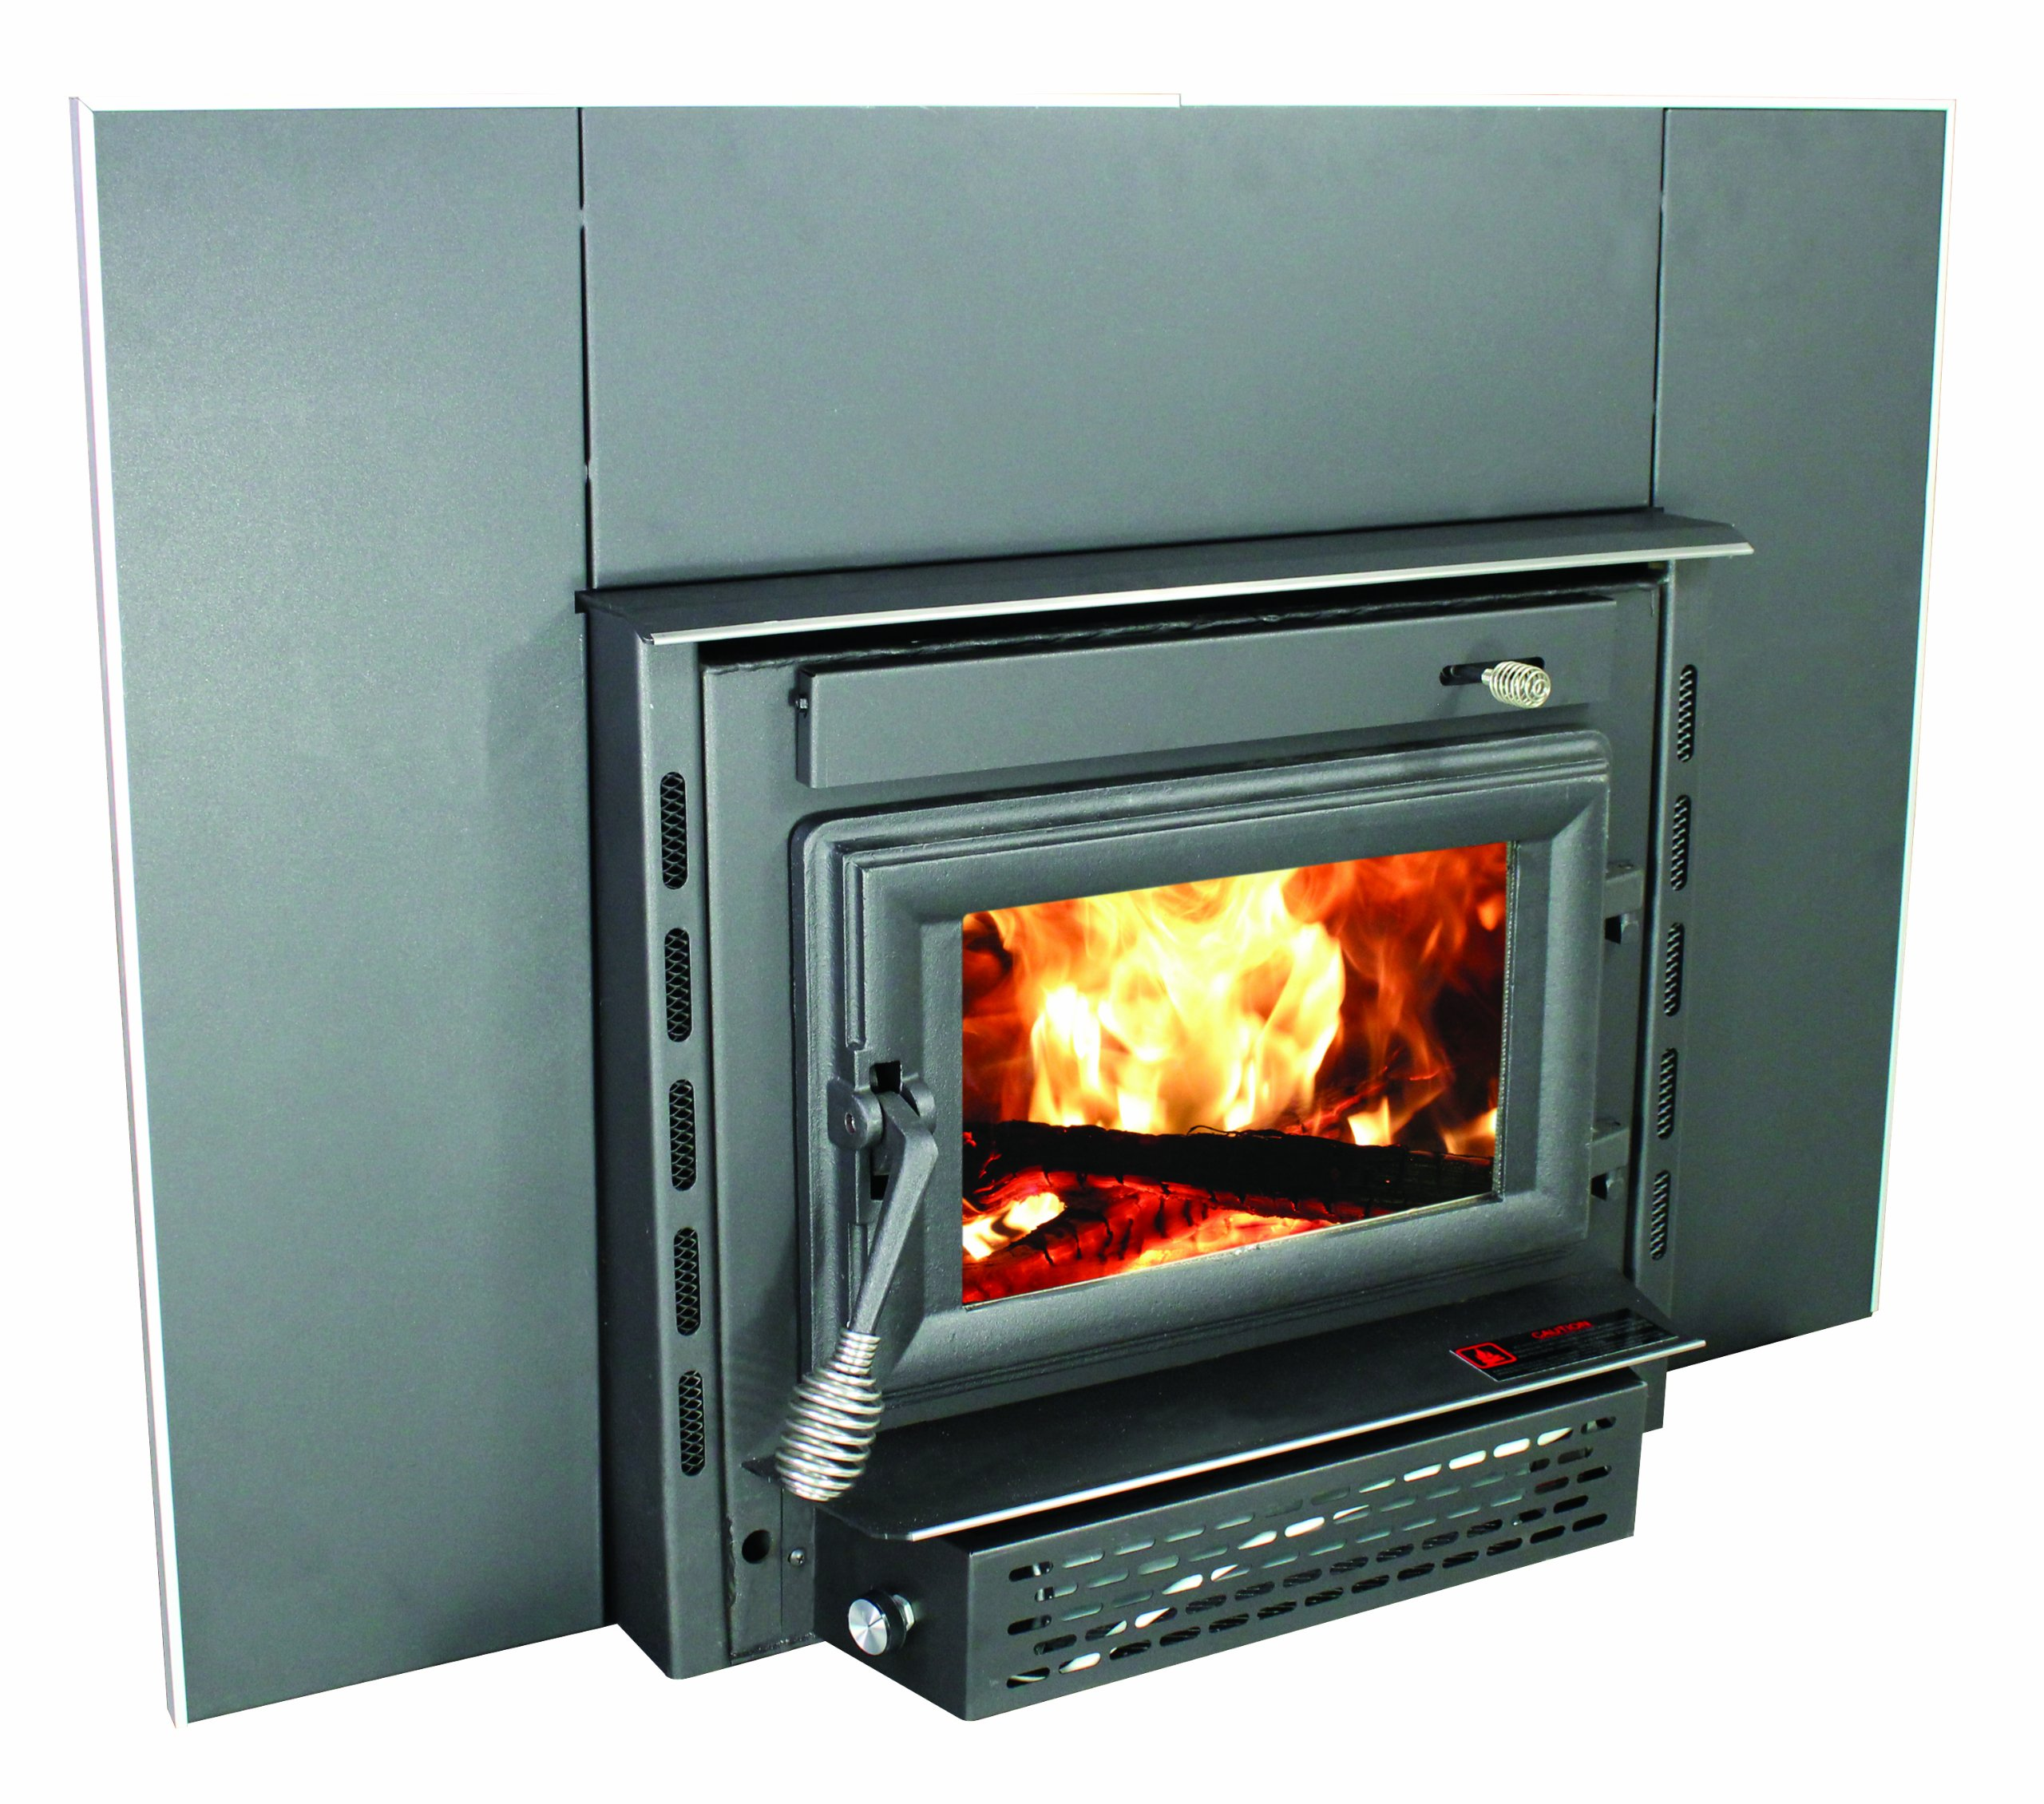 US Stove 2200iE Medium EPA Certified Wood-Burning Fireplace Insert by US Stove Company